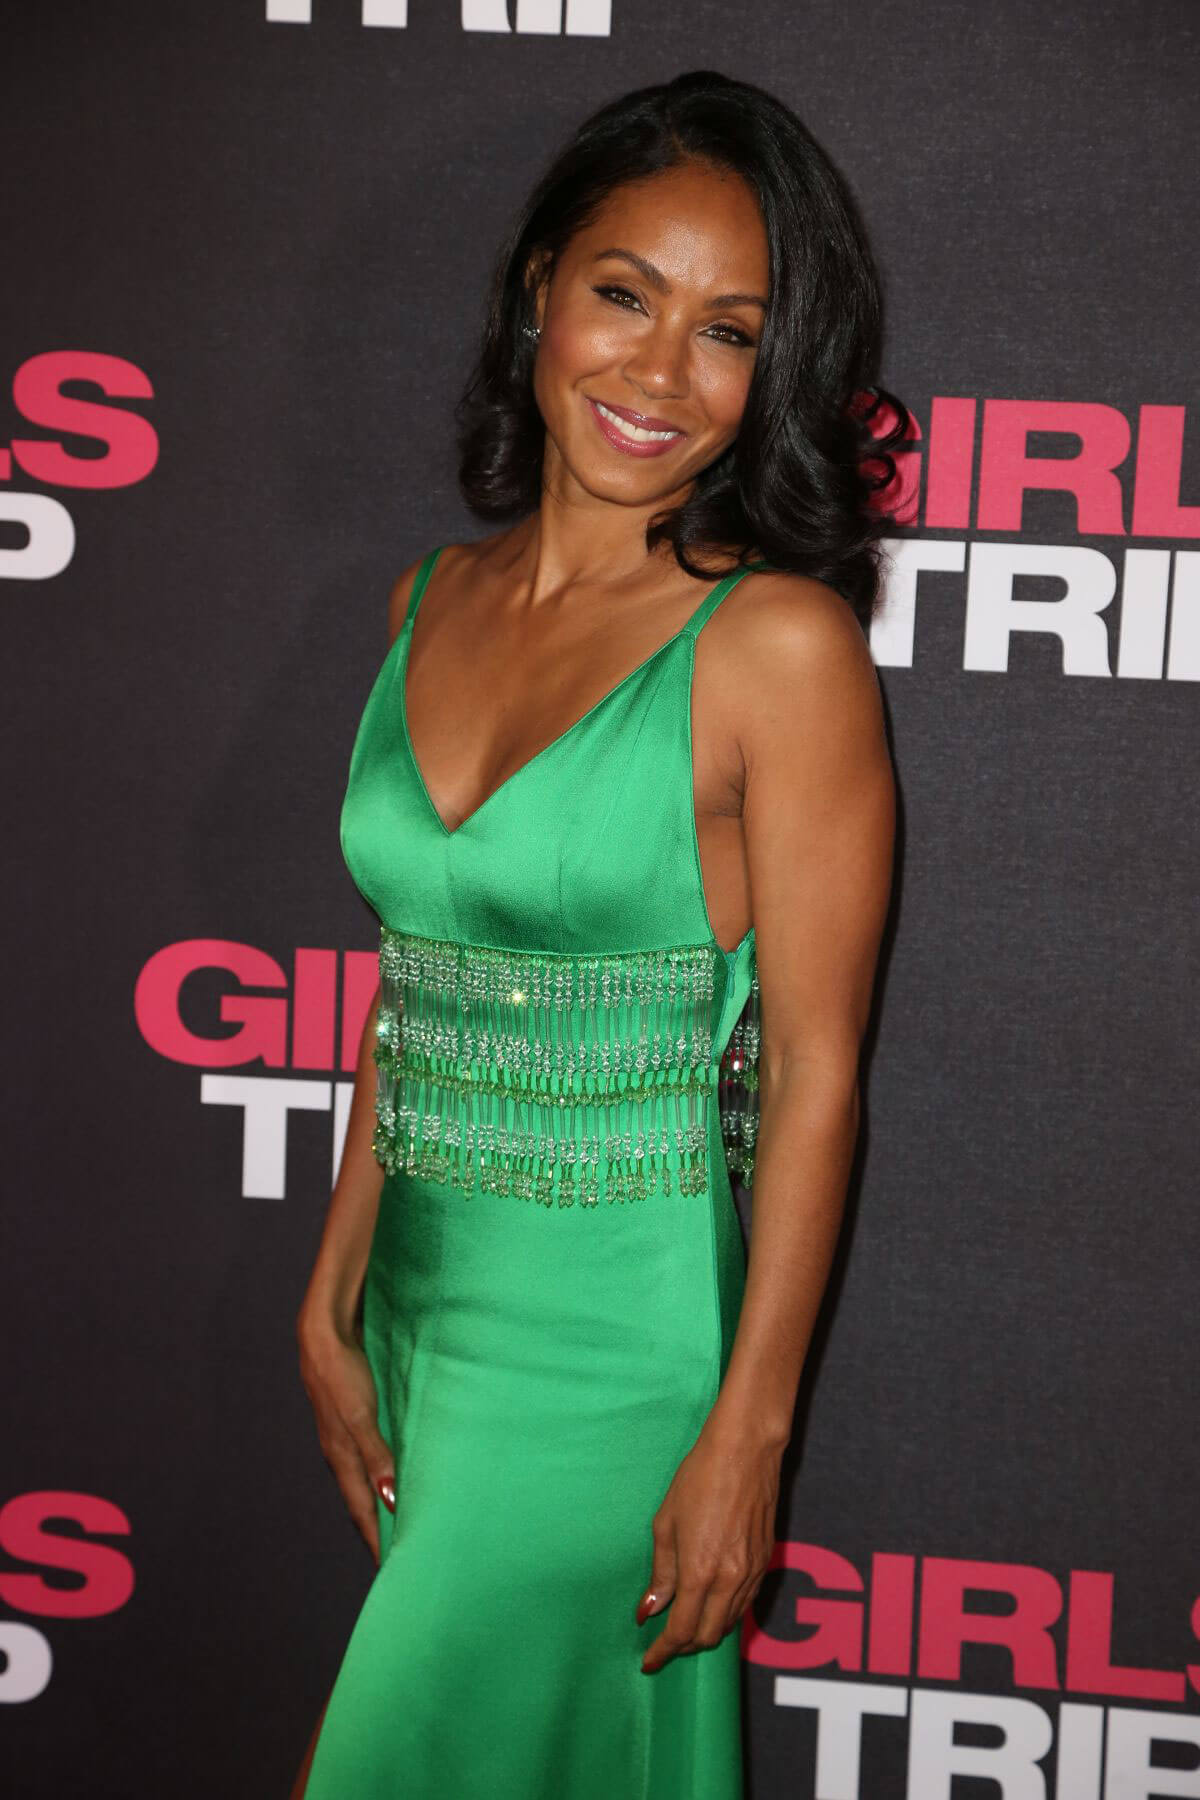 Jada Pinkett Smith Stills at Girls Trip Premiere in Paris